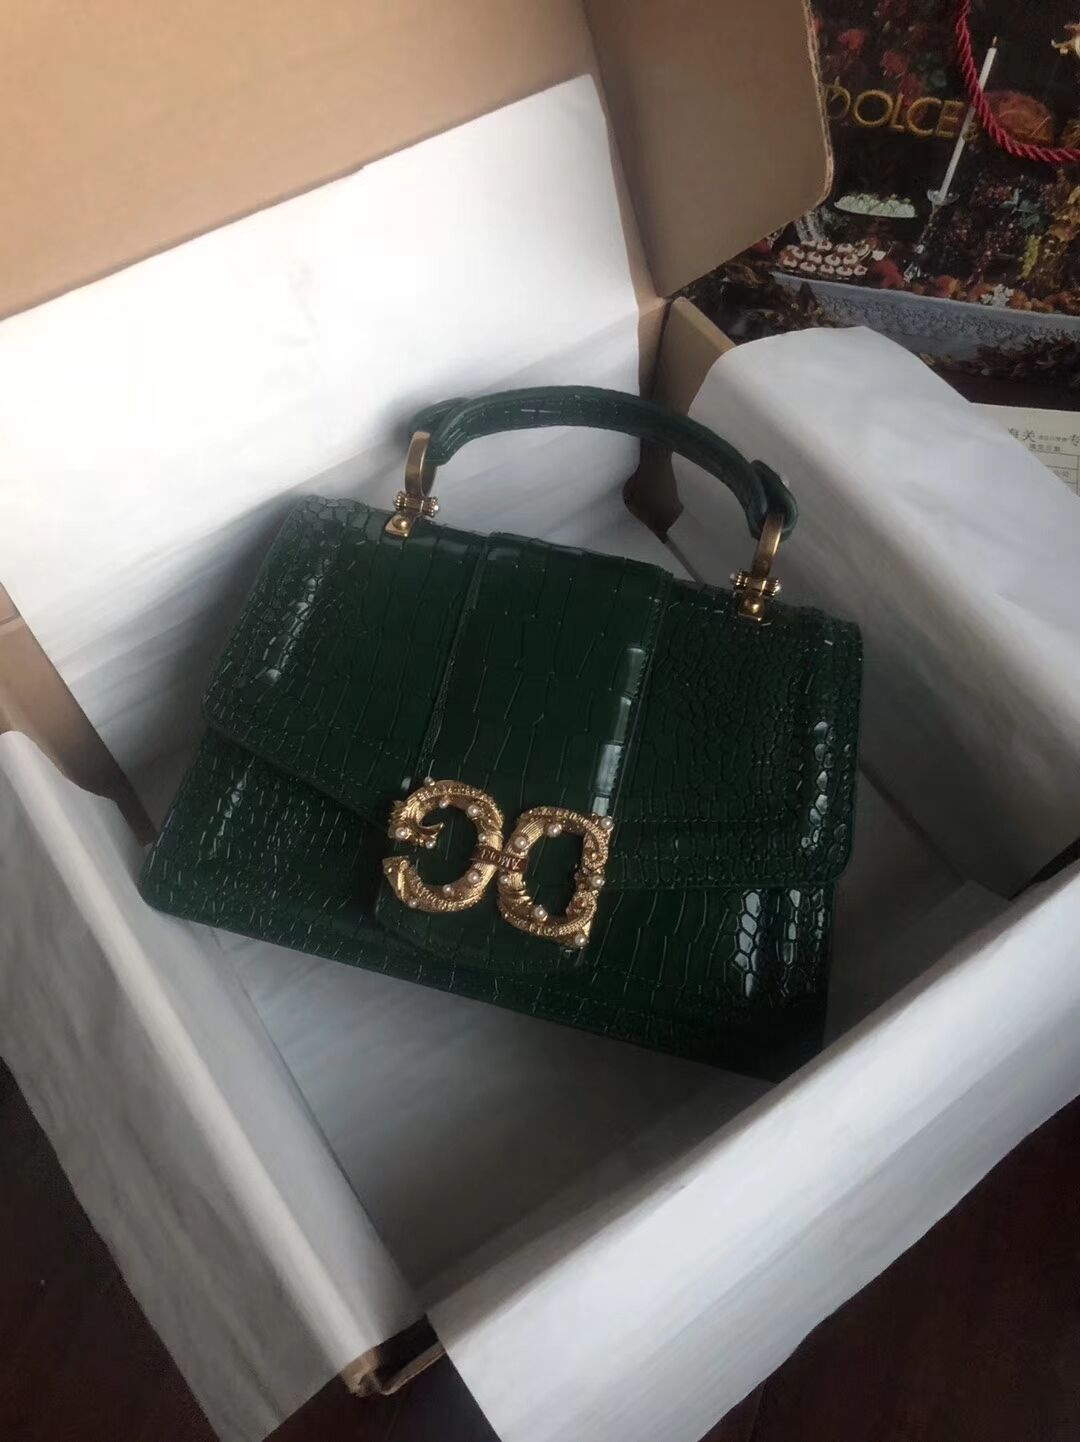 Dolce & Gabbana Origianl Crocodile Leather Bag 4916E Blackish green